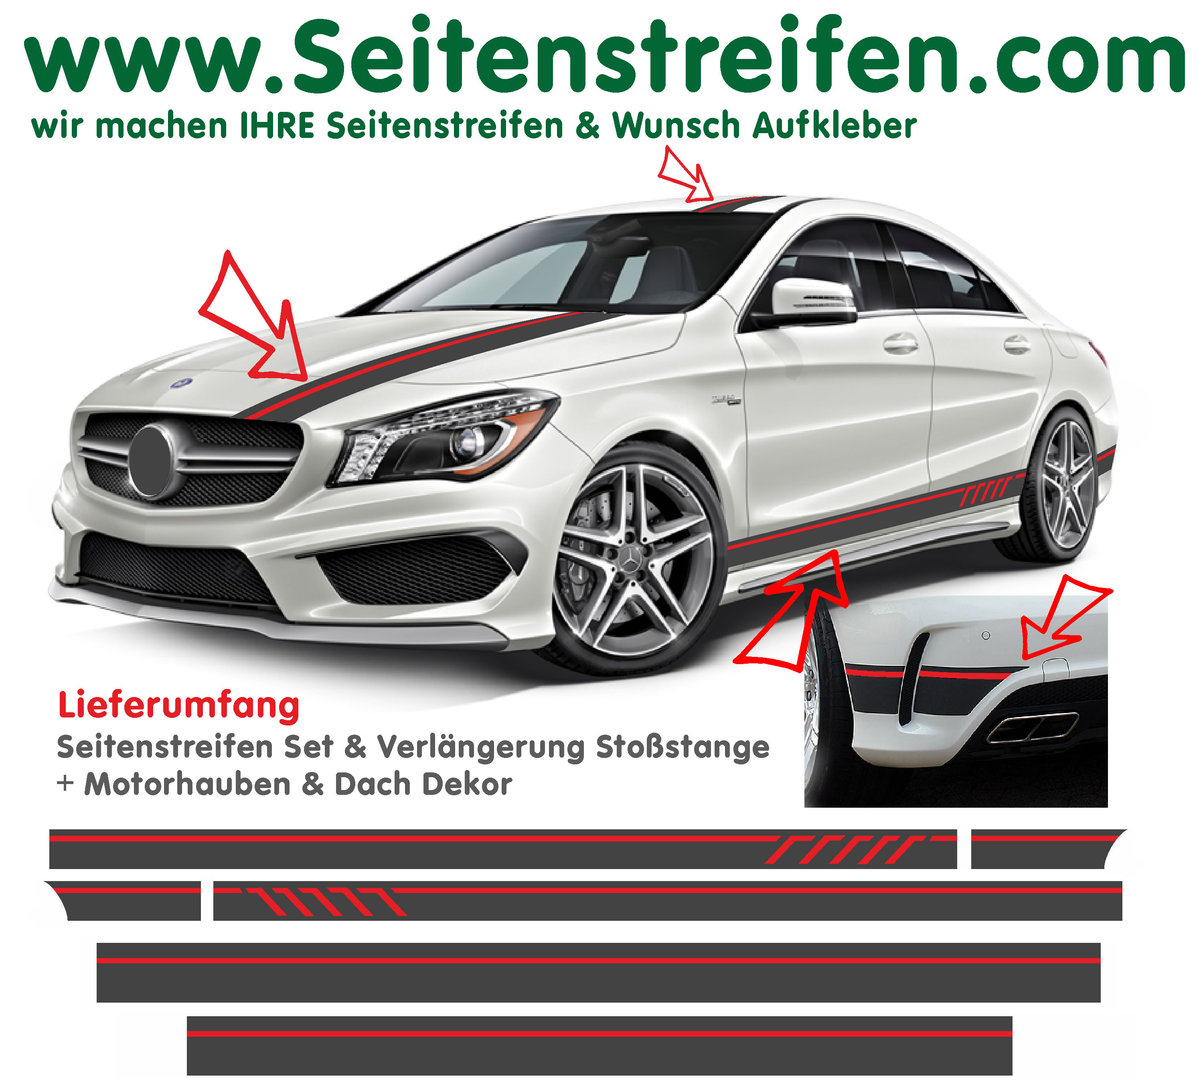 mercedes benz cla amg 45 dition1 bande lat rale. Black Bedroom Furniture Sets. Home Design Ideas